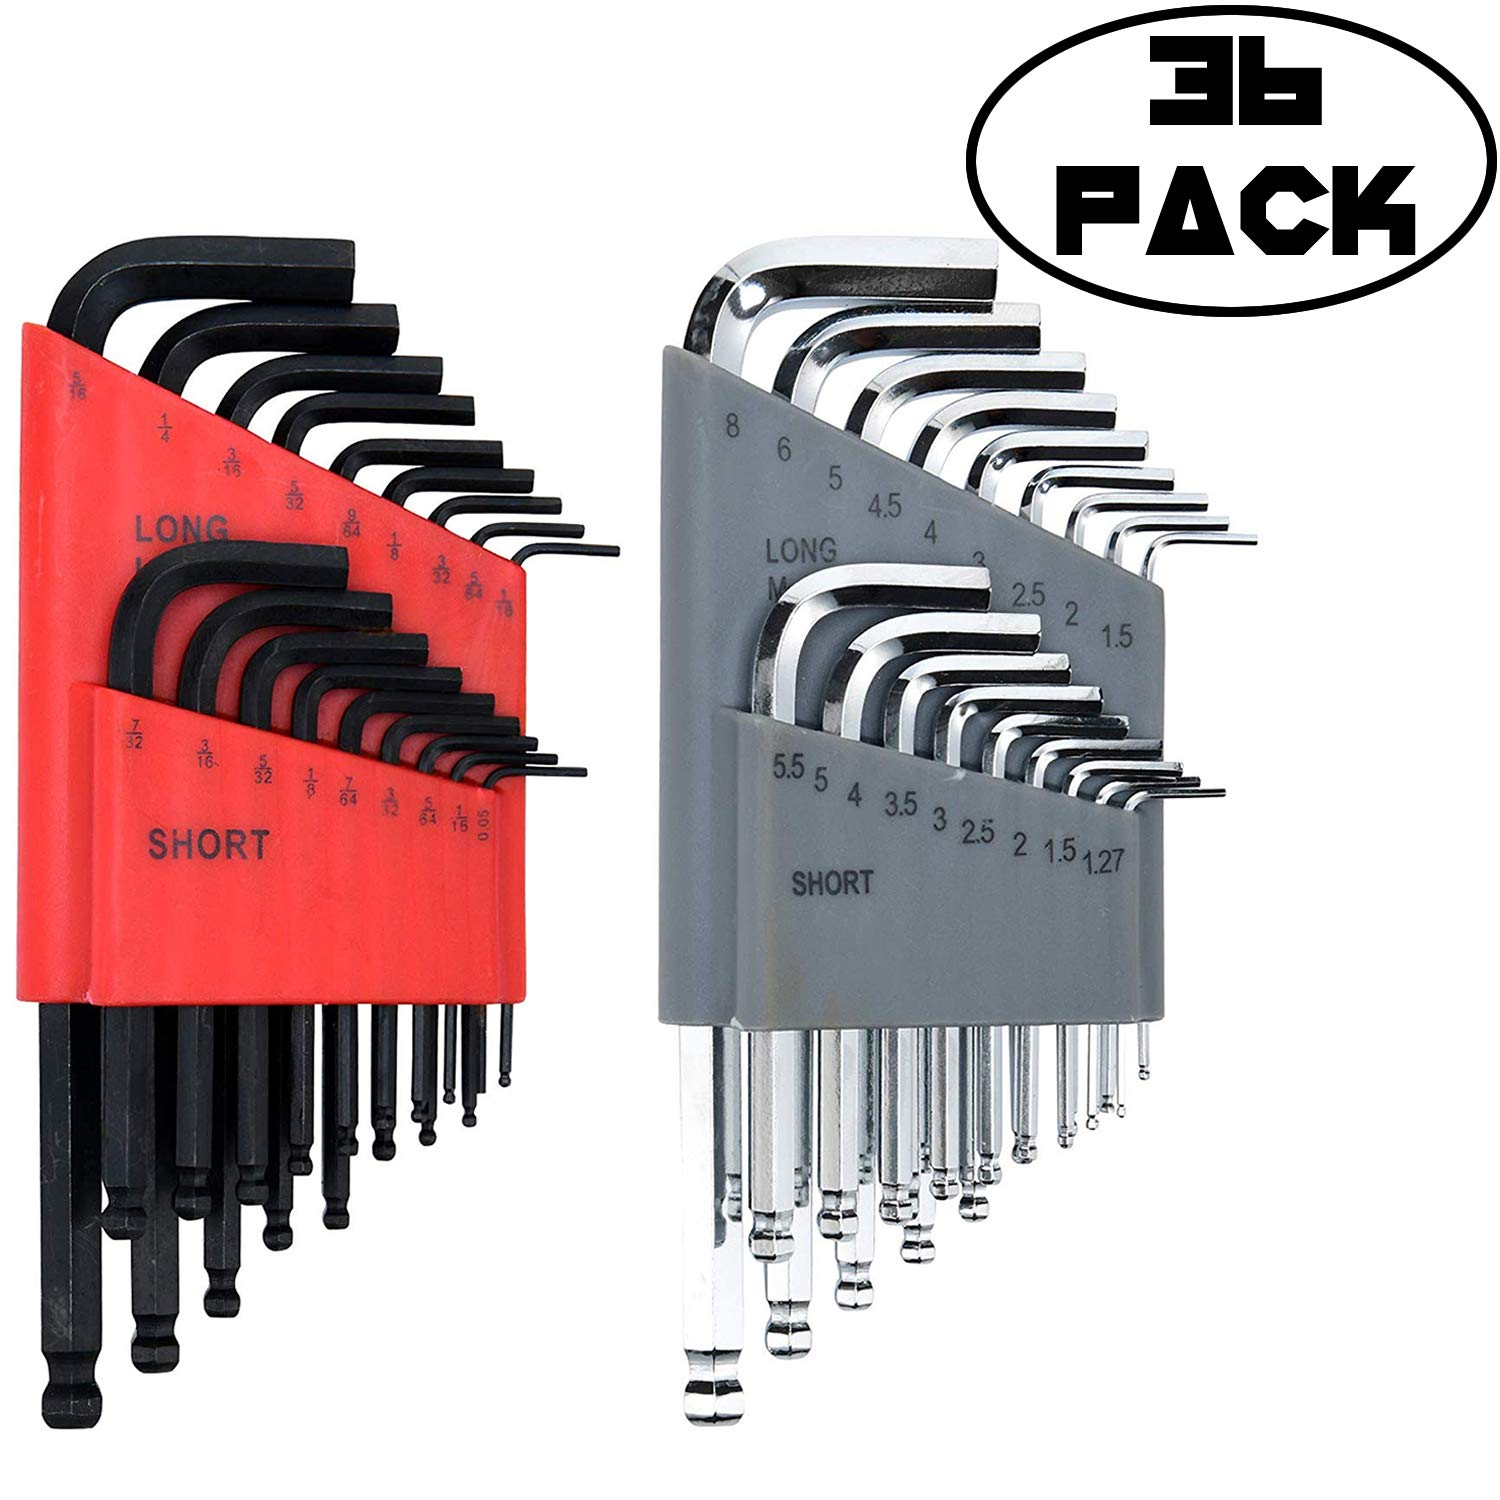 Allen Wrench/Hex Key Set (HUGE SET OF 36 WRENCHES WITH BALL END) Metric & SAE Sizes in Both Long & Short Arm